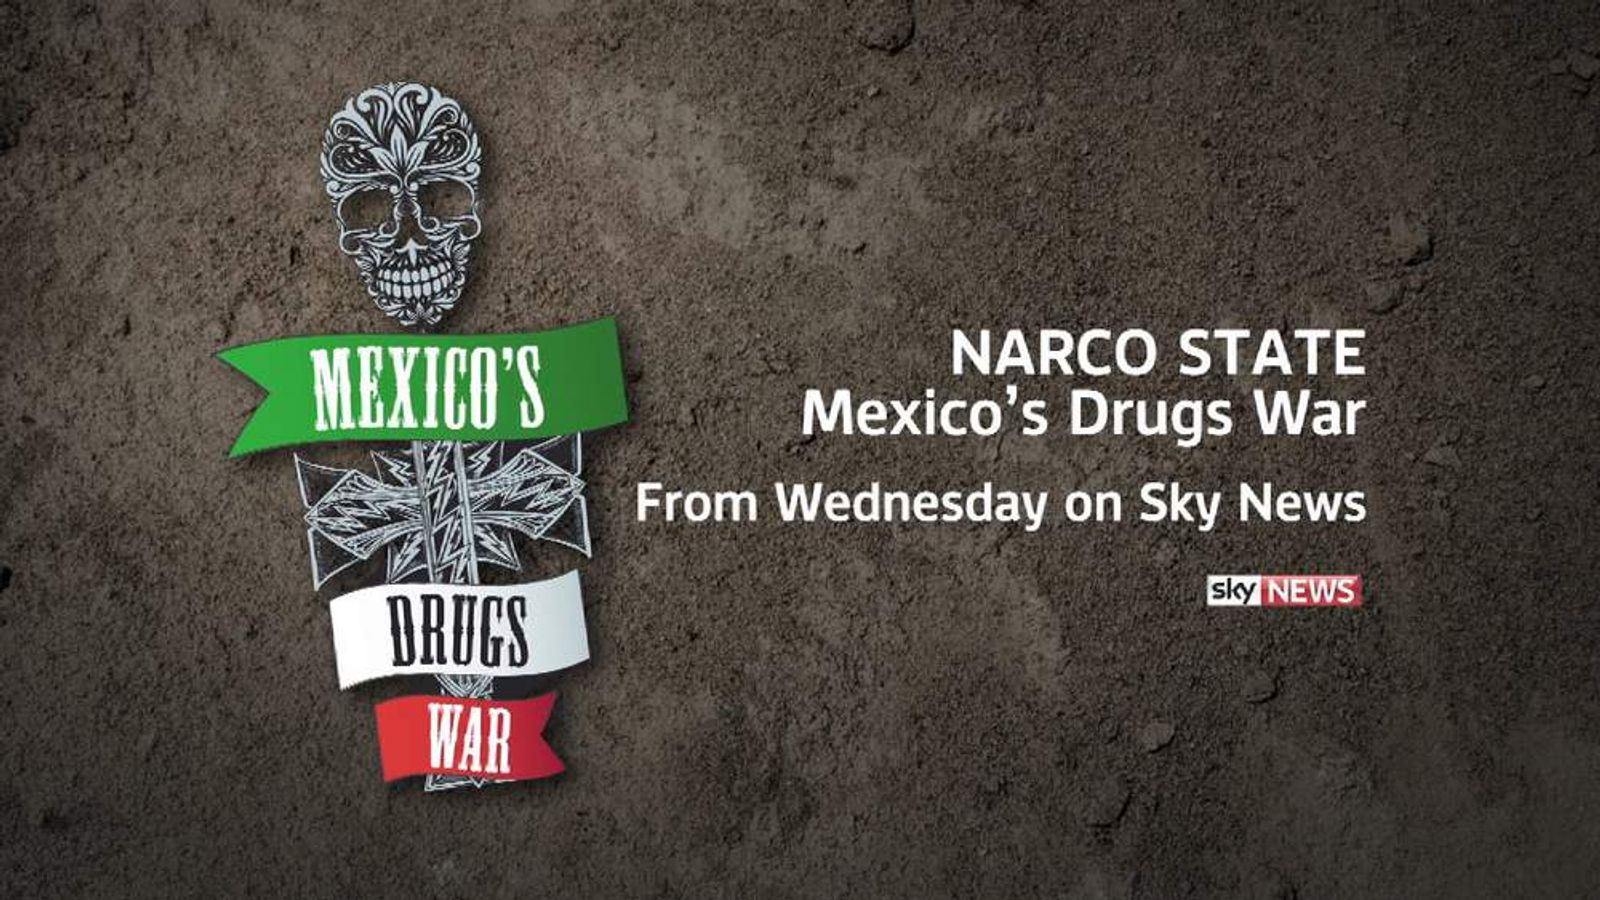 Mexico Drugs Wars promo for Wednesday